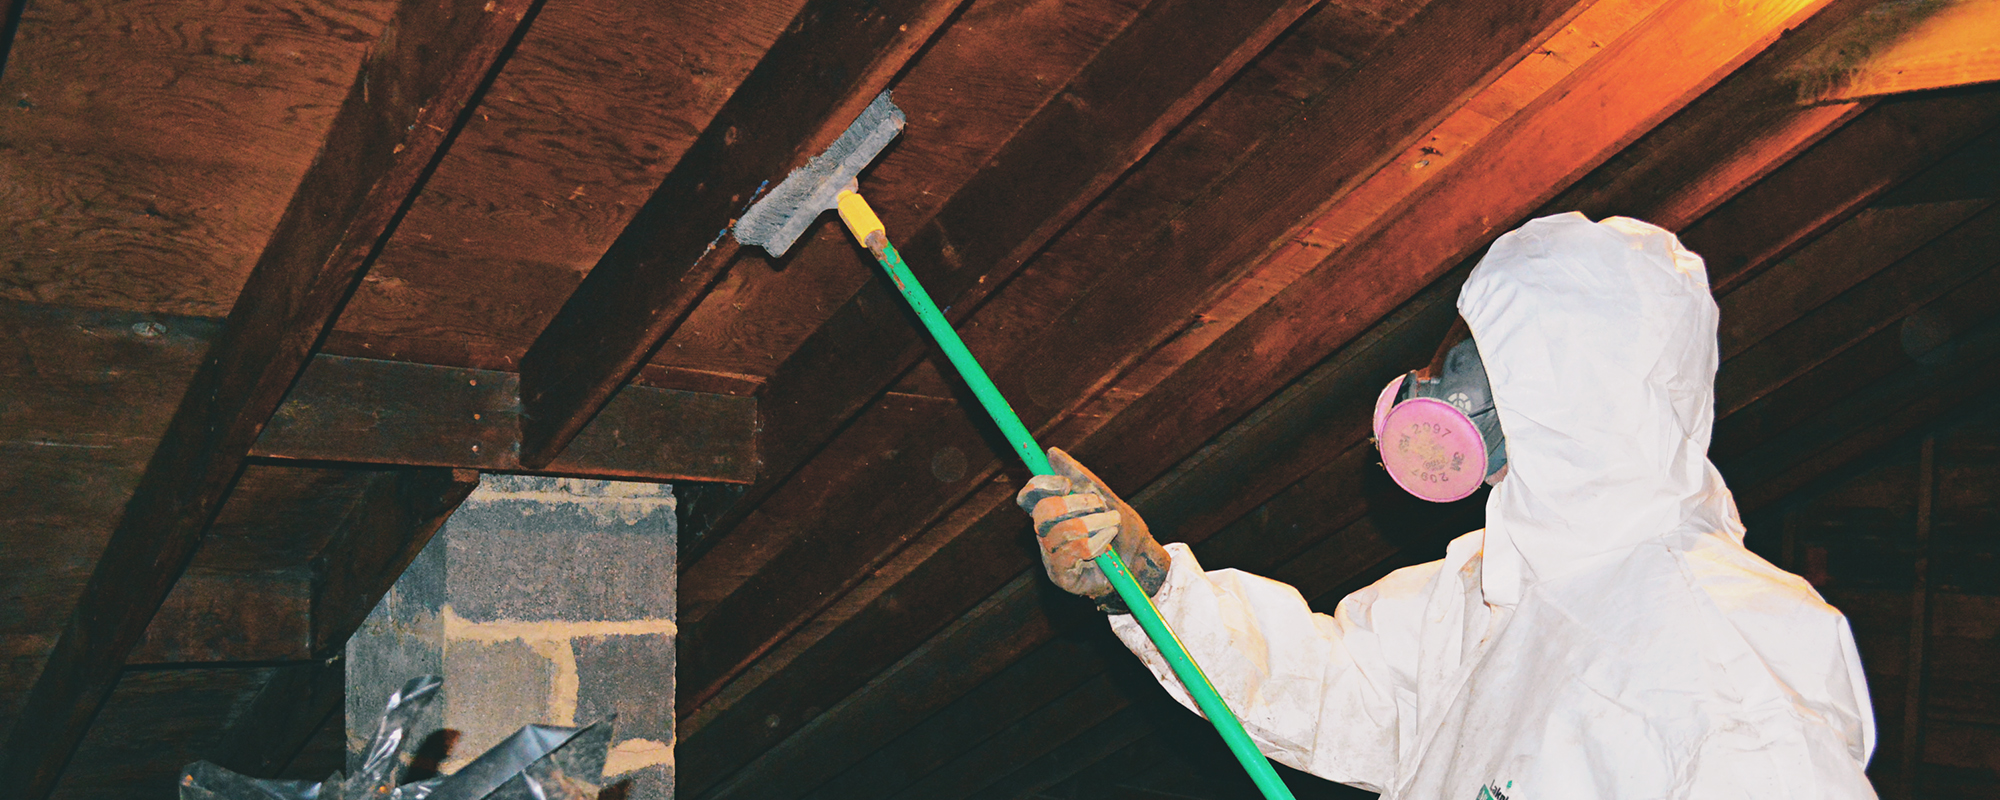 Attic Mold Removal NJ Professional South Jersey Mold Removal Services